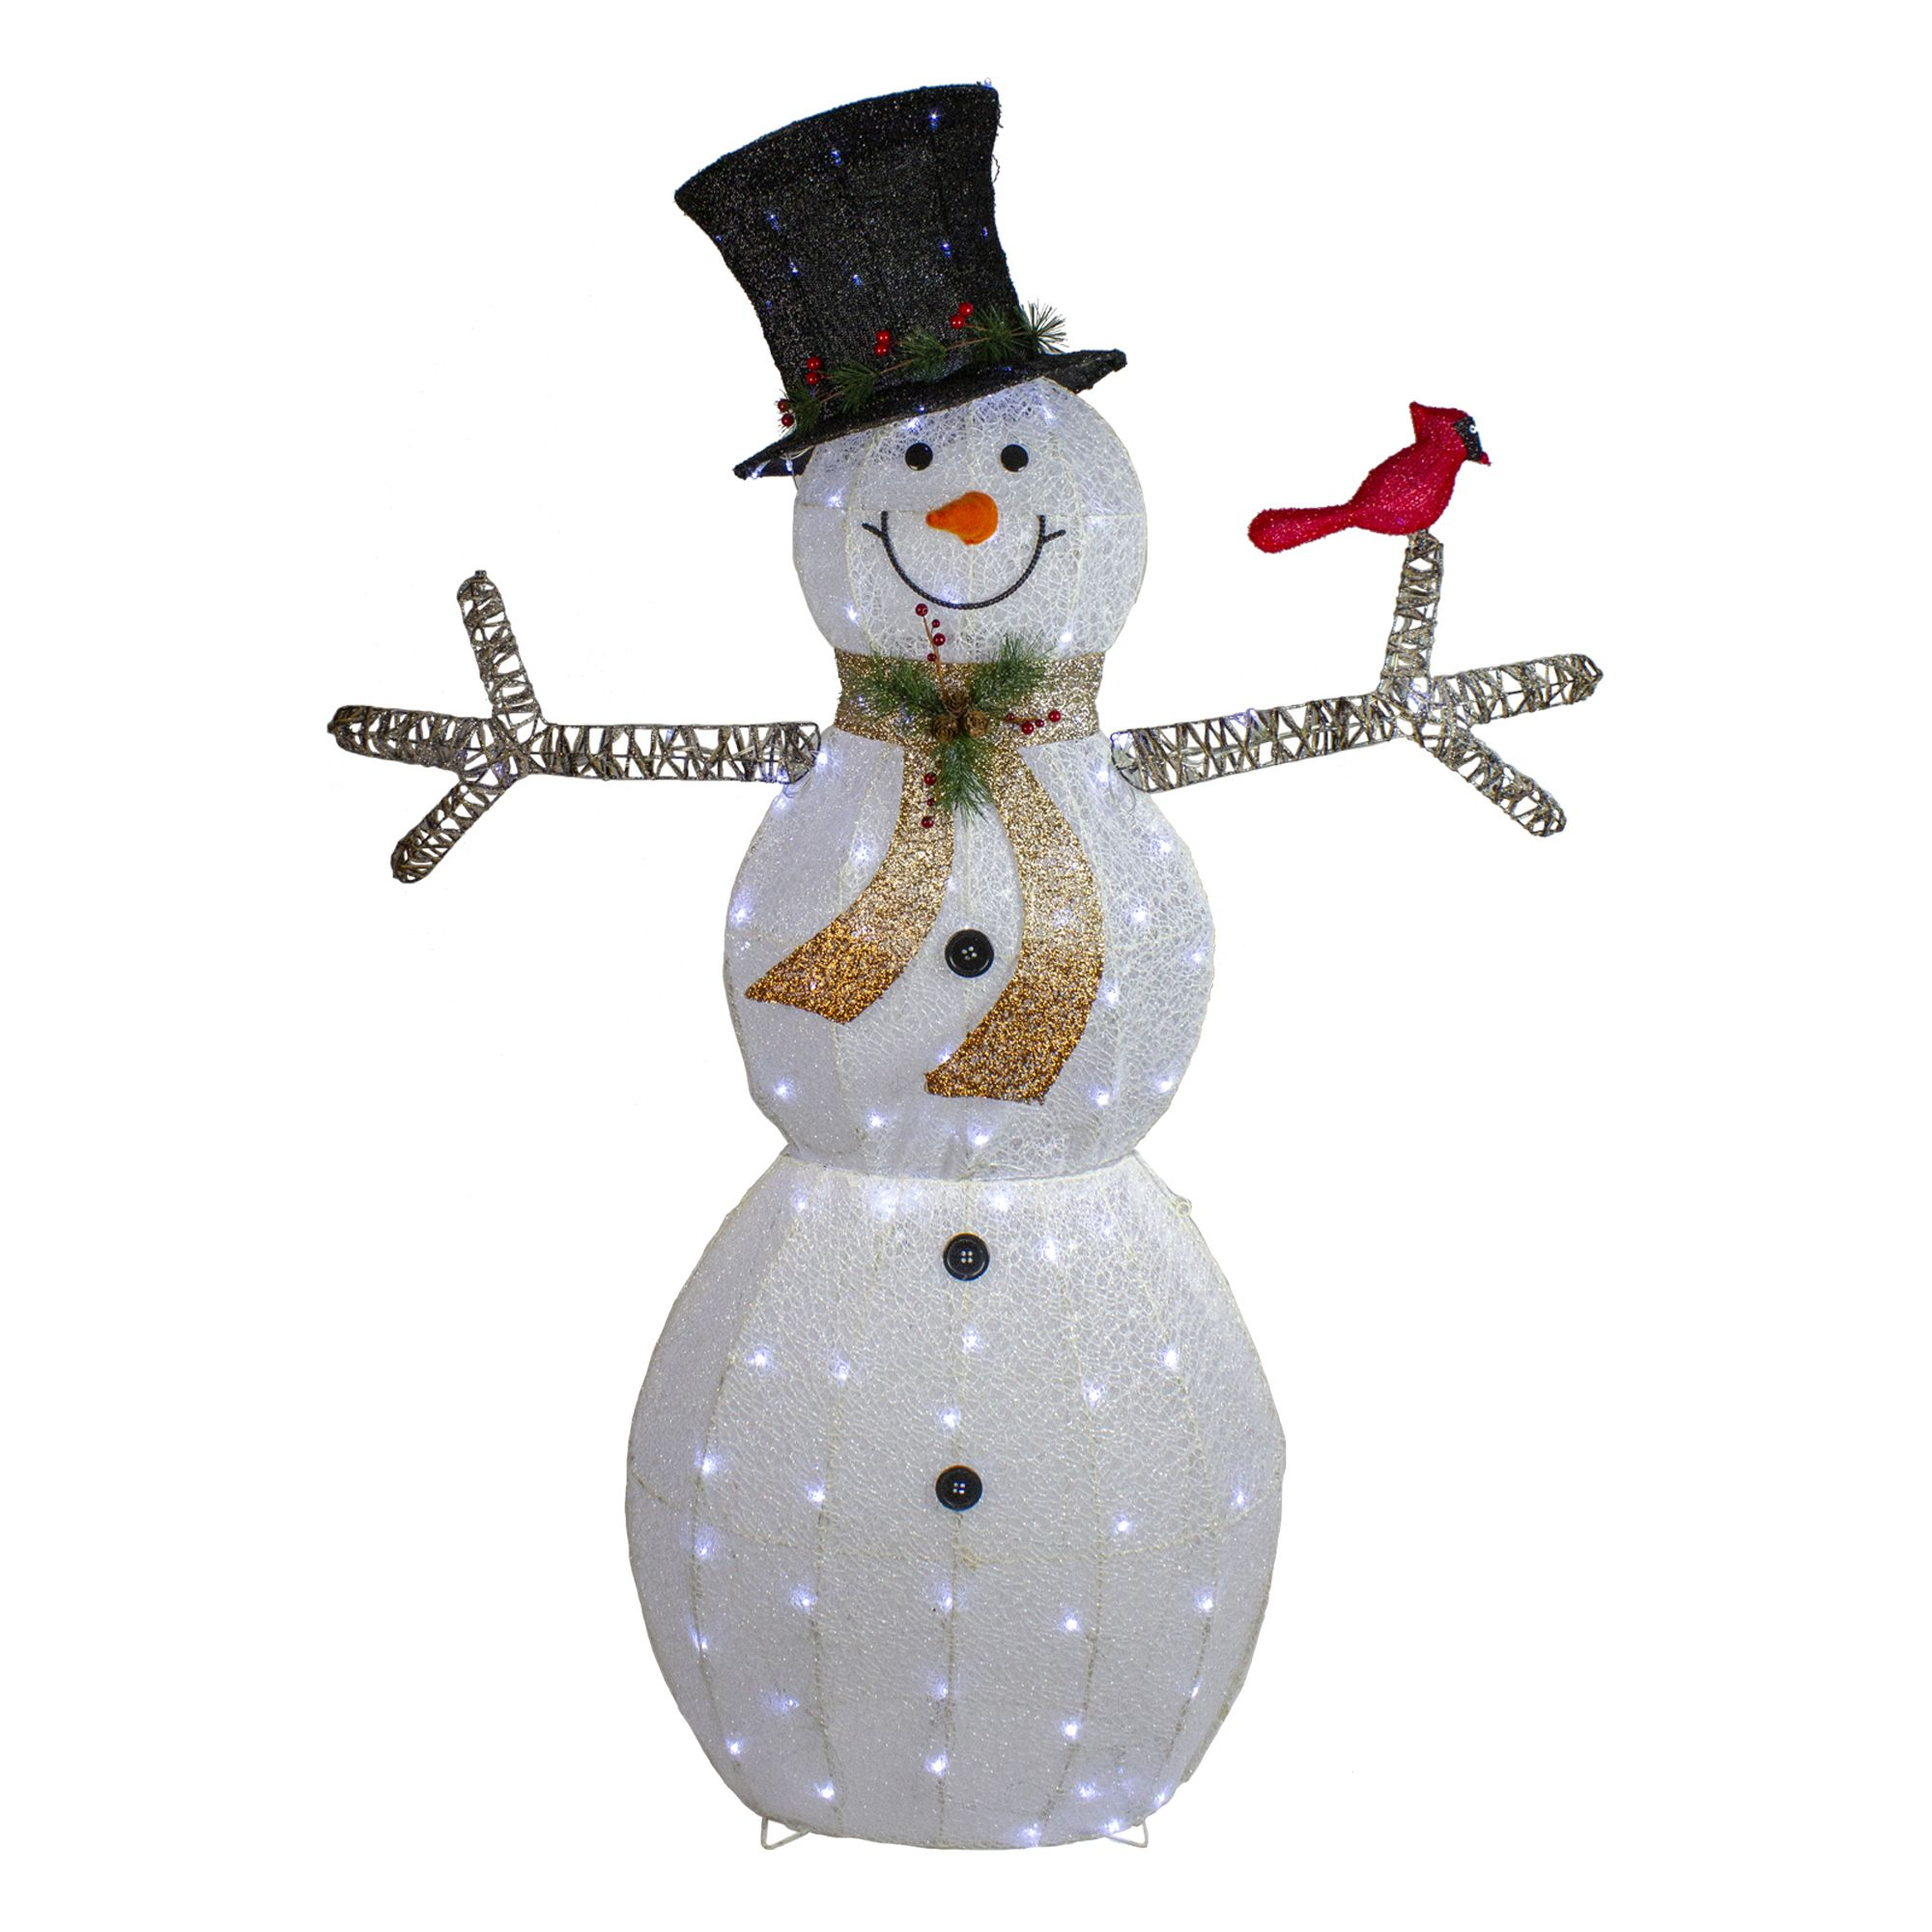 72 Led Lighted Snowman With Black Top Hat Christmas Outdoor Decoration 33380934 Outdoor Christmas Decorations Outdoor Christmas Outdoor Christmas Decorations Lights